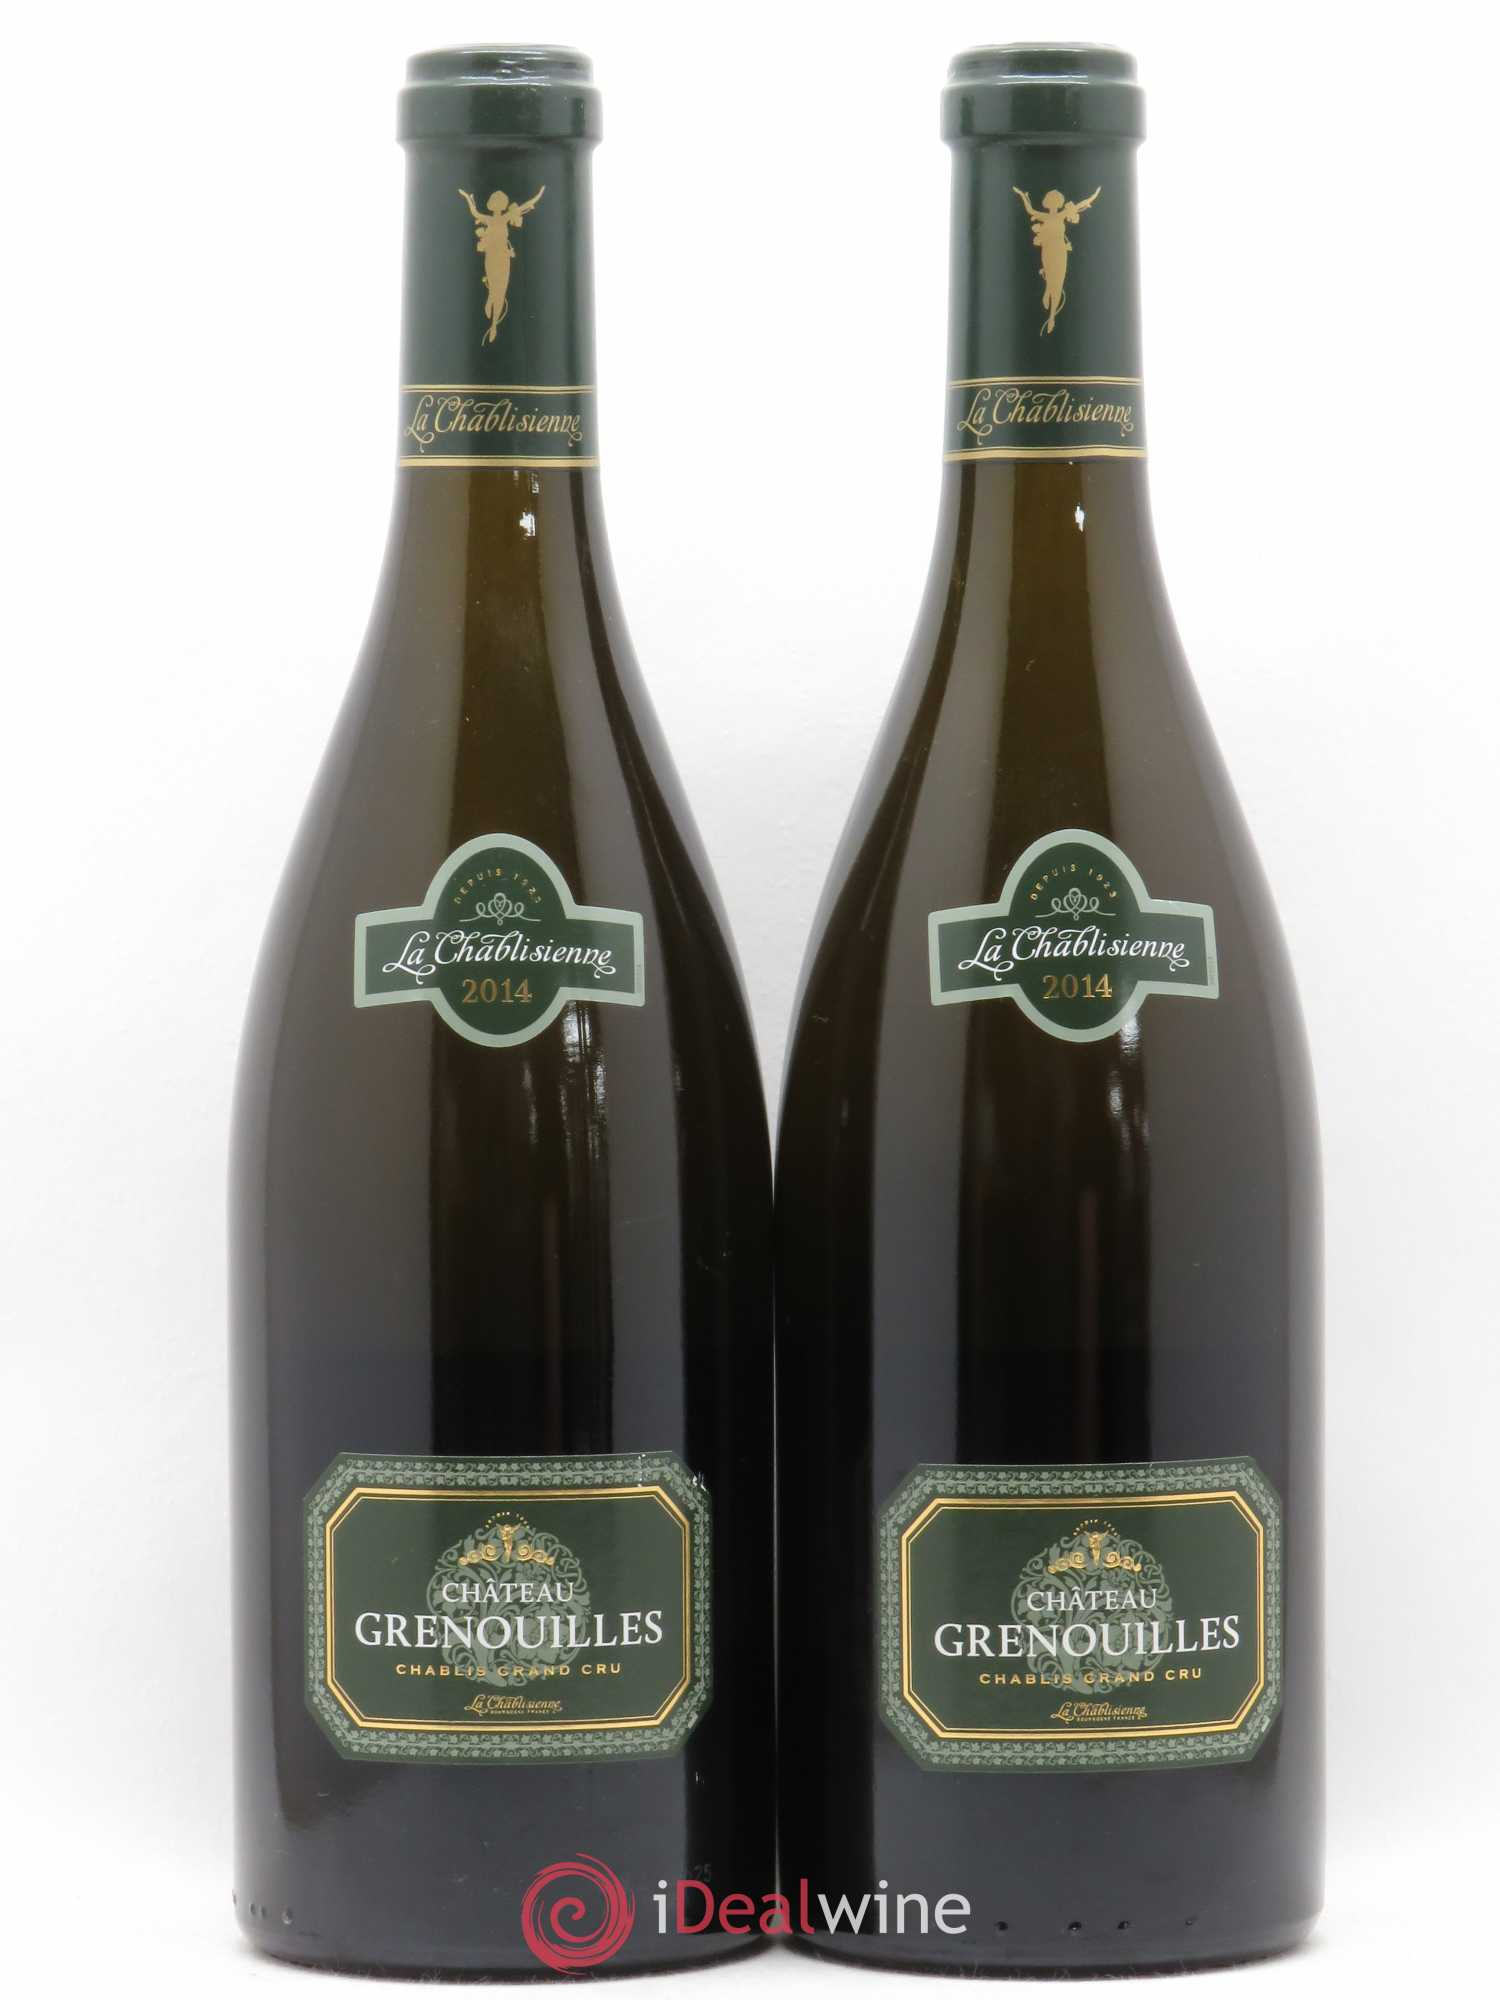 Chablis Grand Cru Grenouilles La Chablisienne  2014 - Lot of 2 Bottles